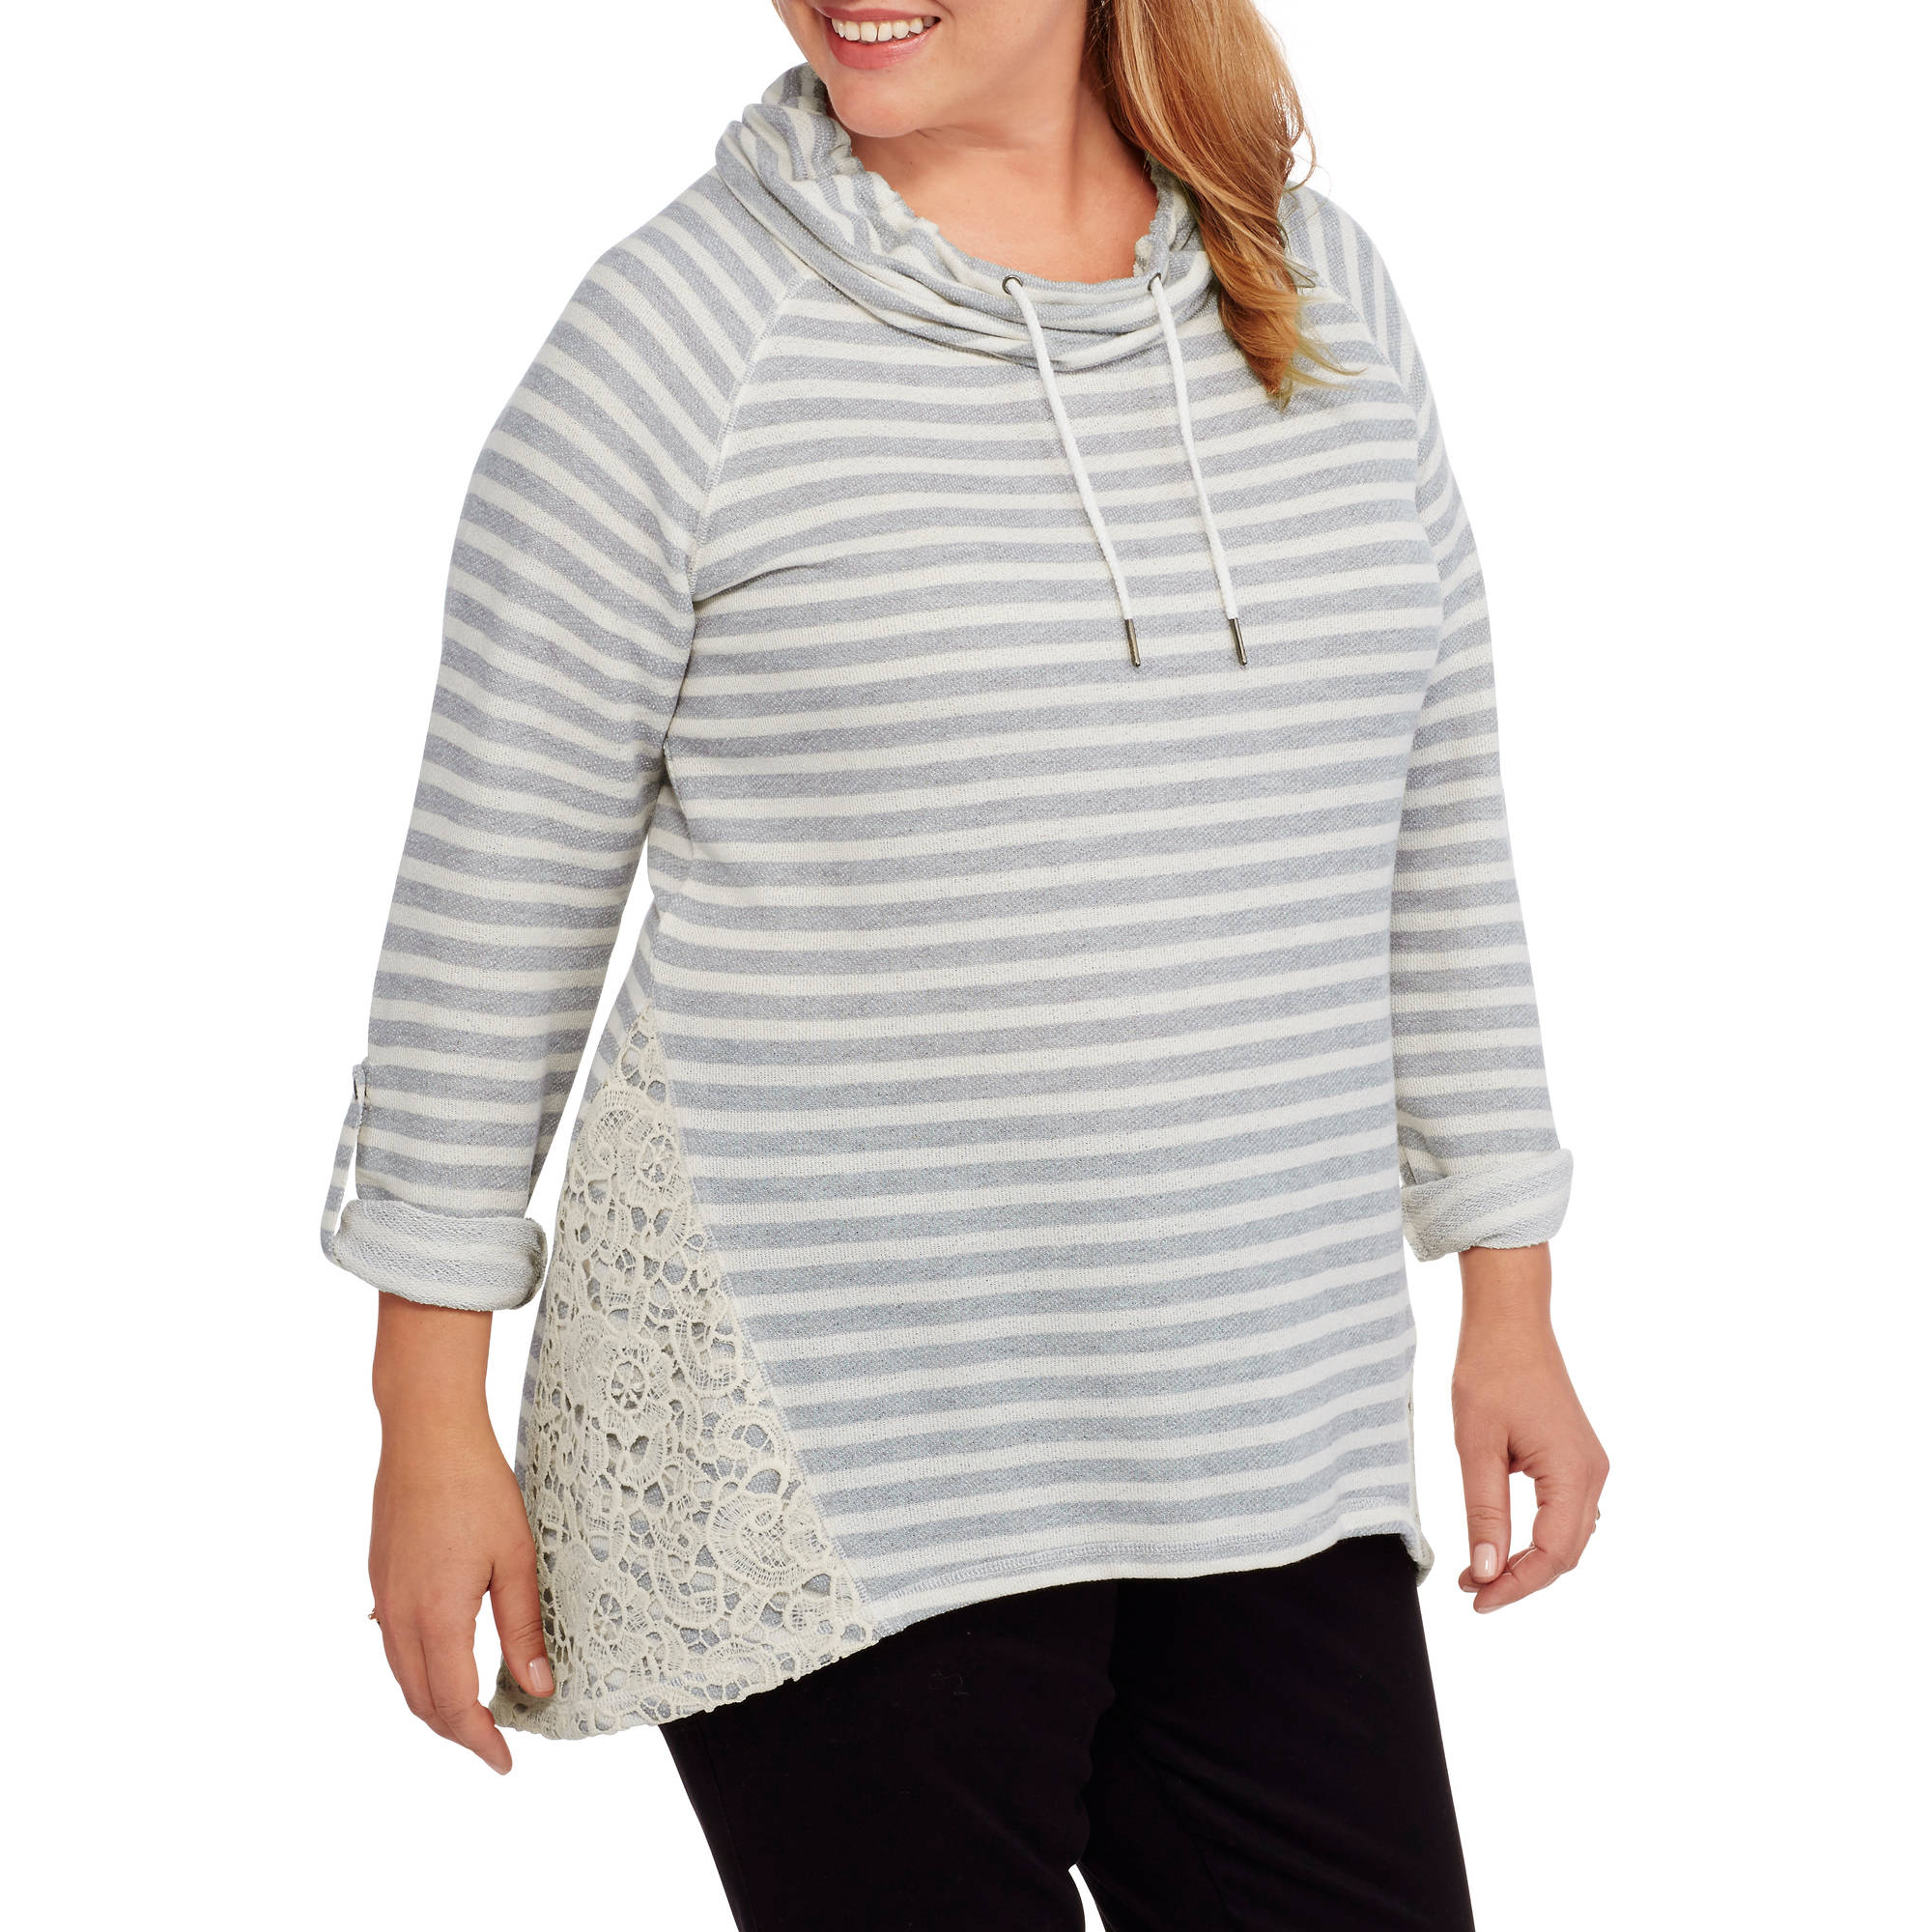 French Laundry Women's Plus Funnel Tie Neck with Roll Up Sleeve and Crochet Knit Top